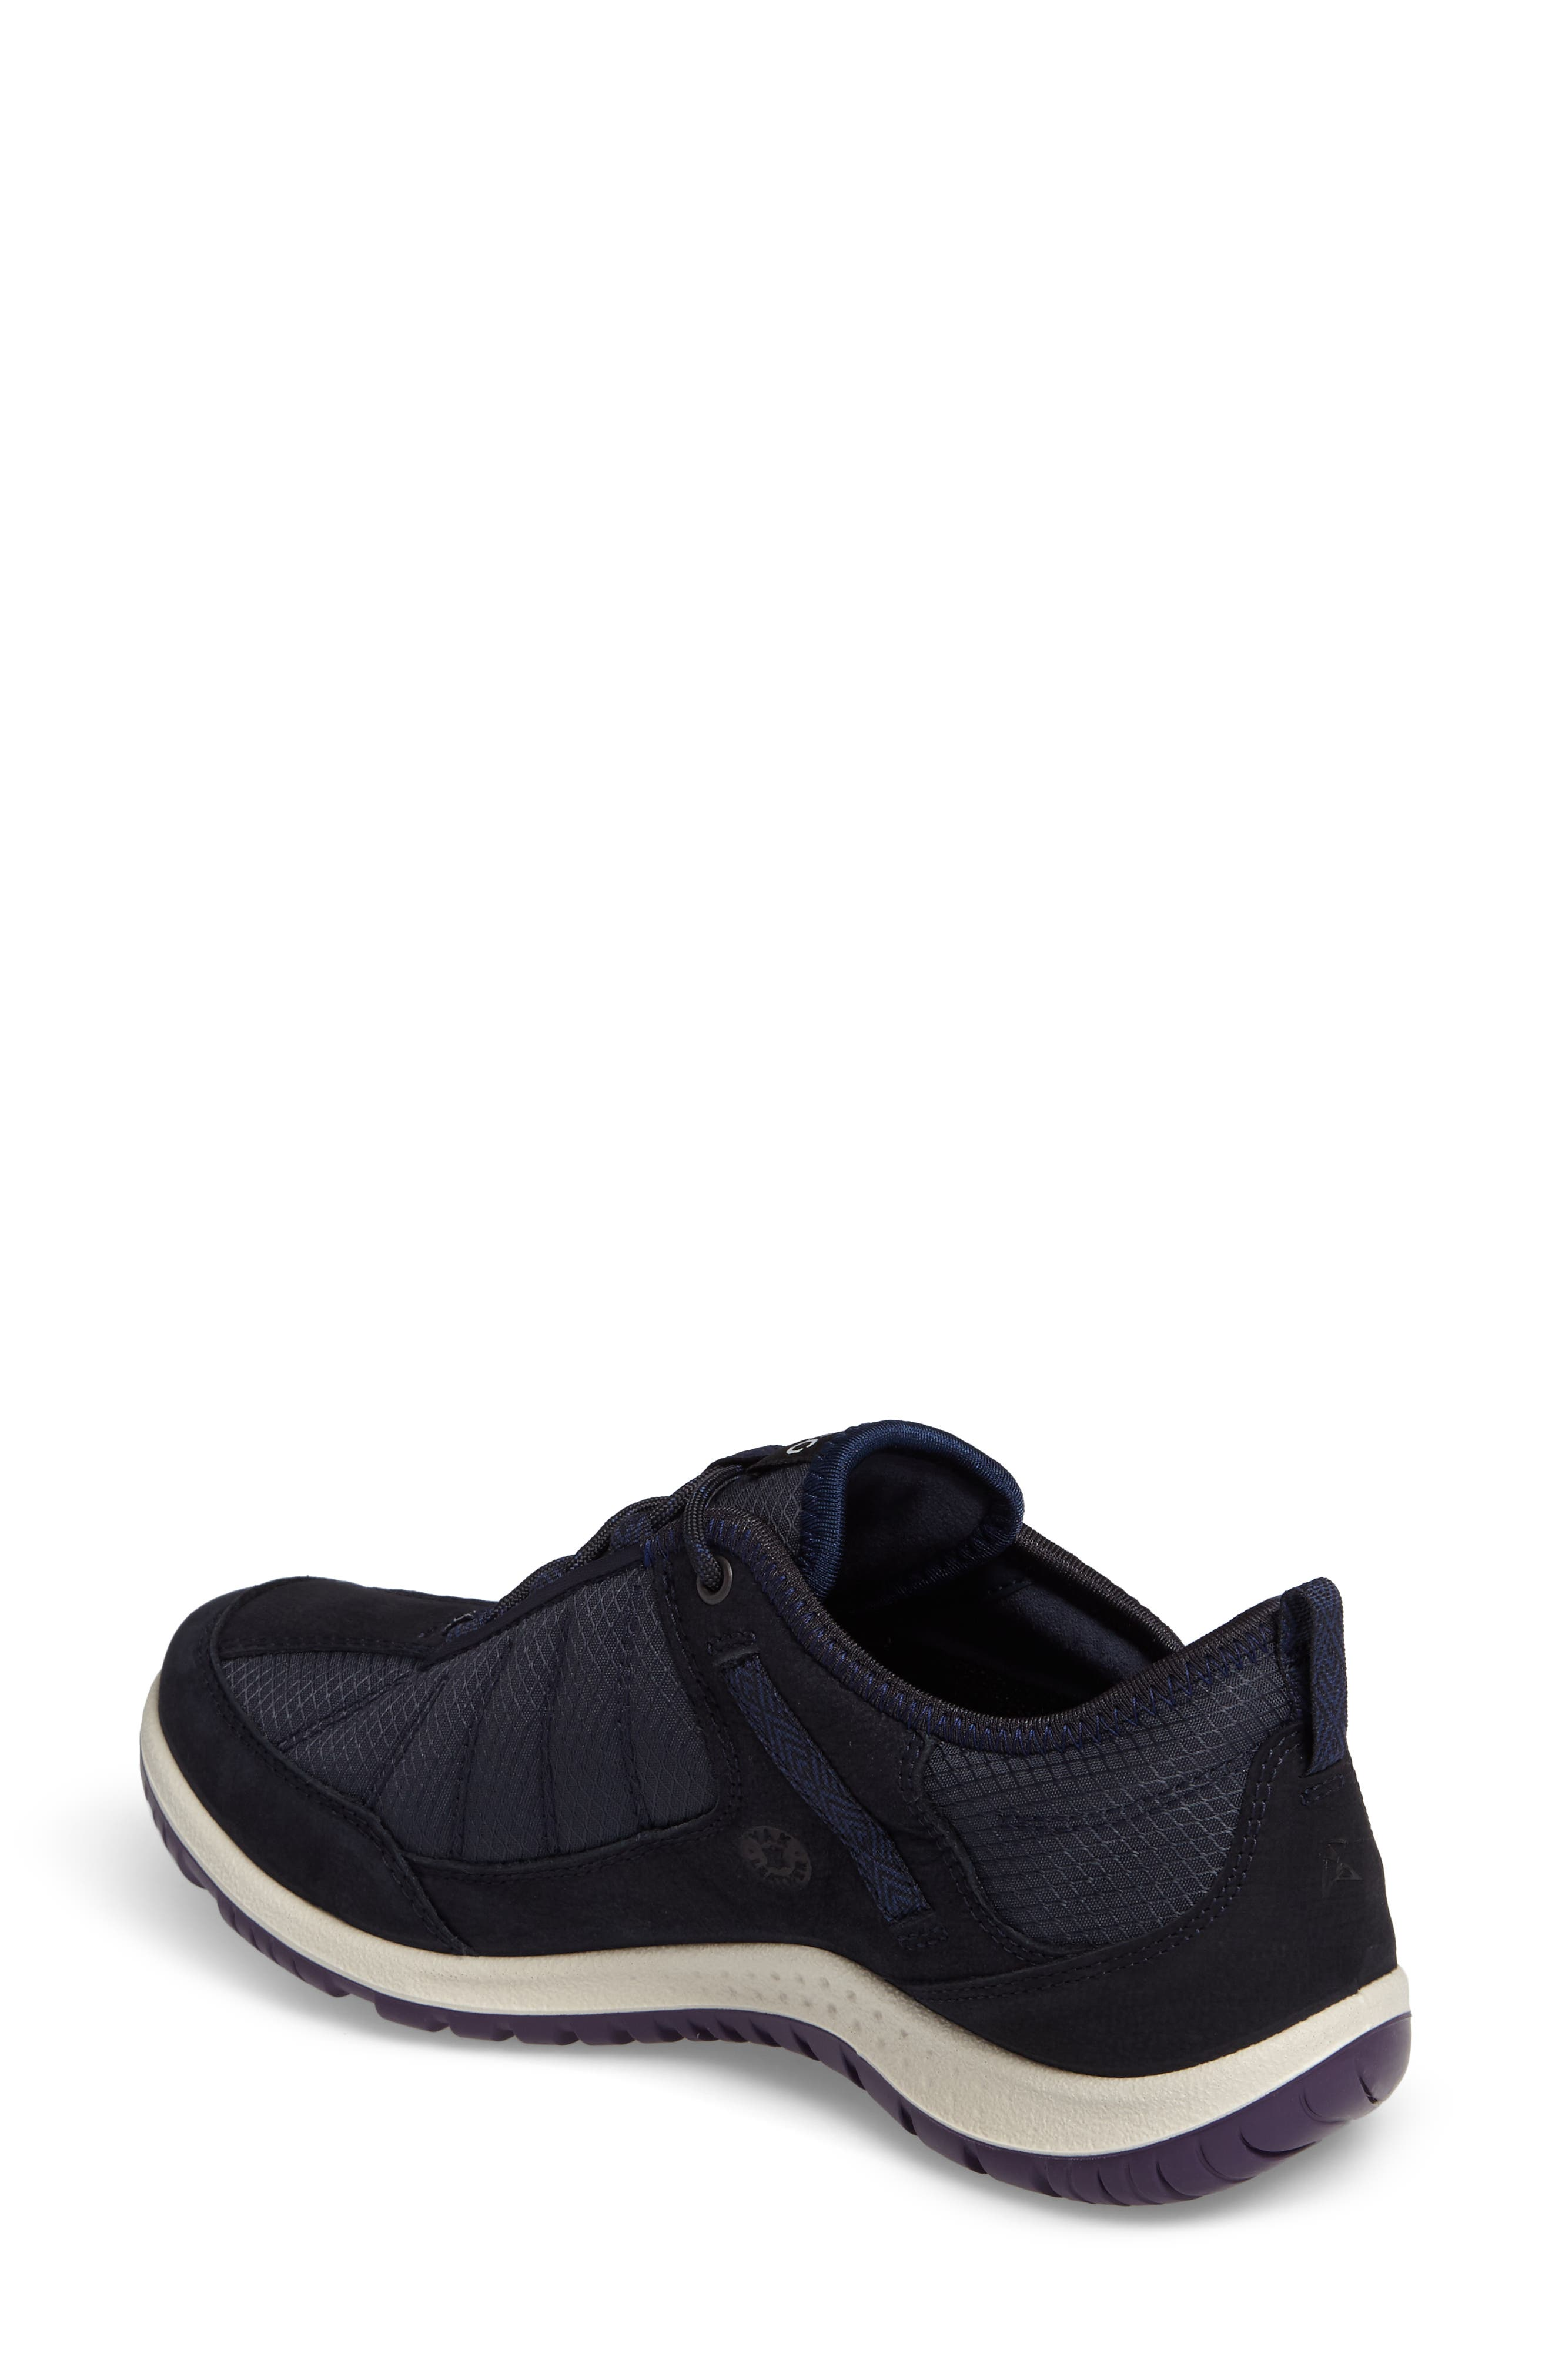 Aspina GTX Waterproof Sneaker,                             Alternate thumbnail 2, color,                             Navy Leather